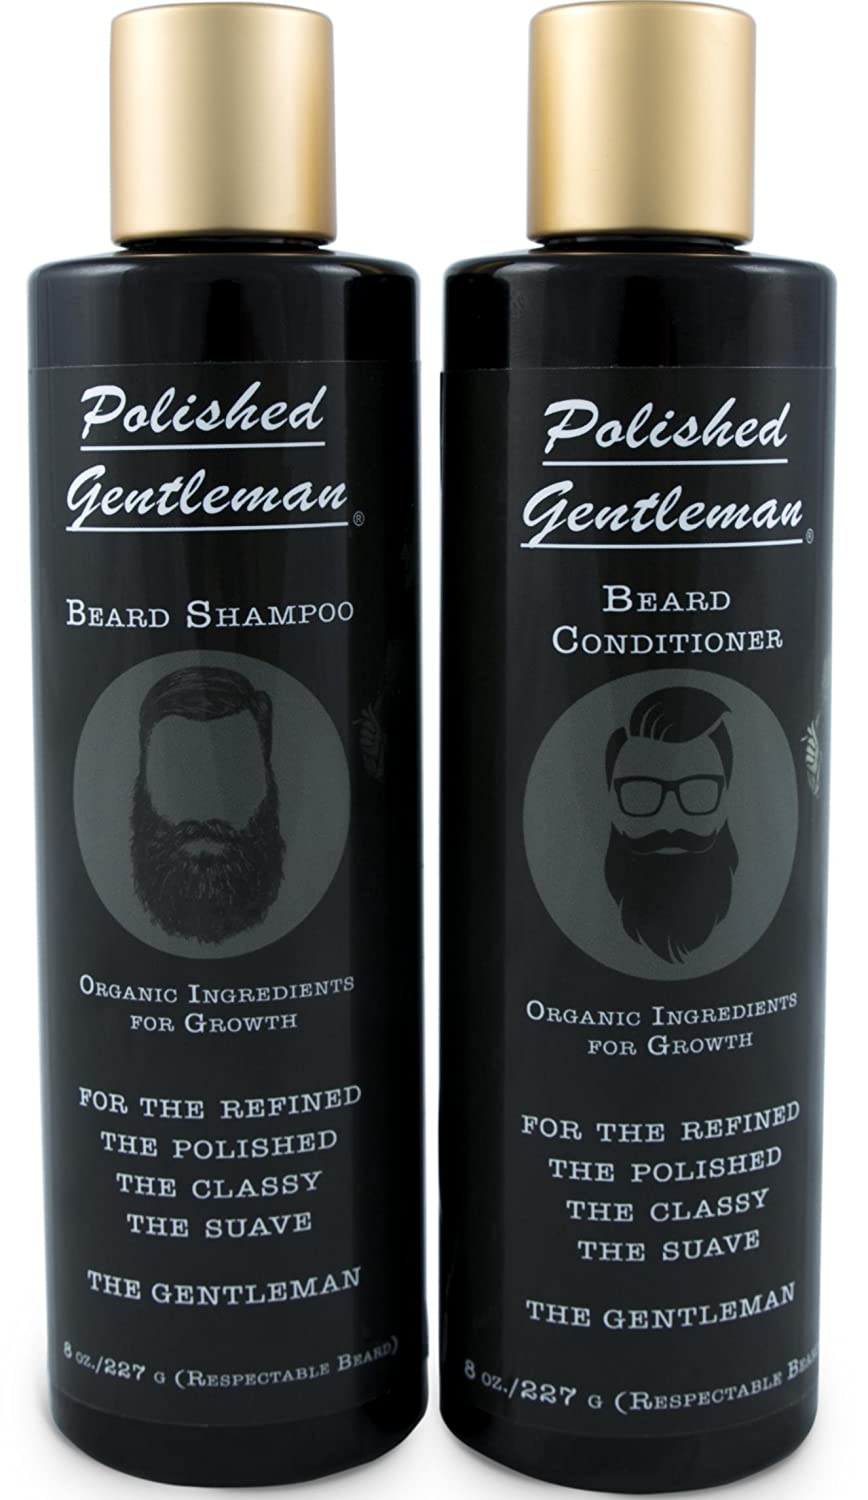 Beard Growth and Thickening Shampoo and Conditioner Set - Beard Care With Organic Beard Oil - Facial Hair Growth For Men - For Younger Looking Beard - Rapid Beard Growth (8 oz) - Made by USA Polished Gentleman